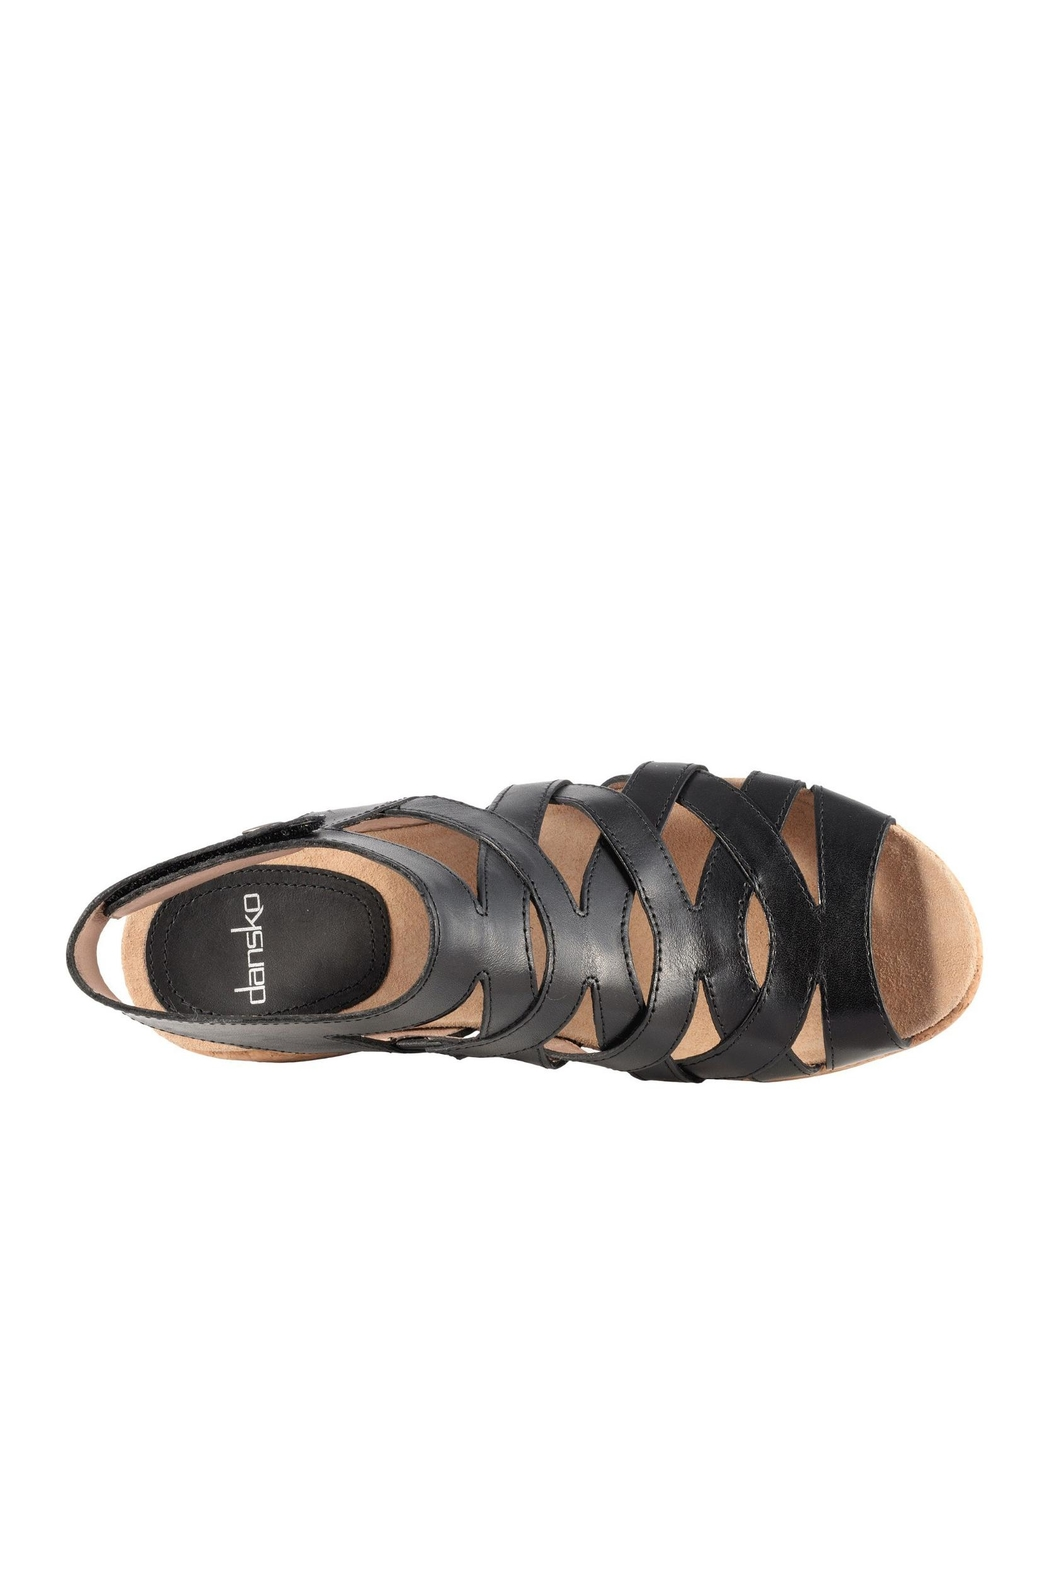 Dansko Cecily Caged - Back Cropped Image